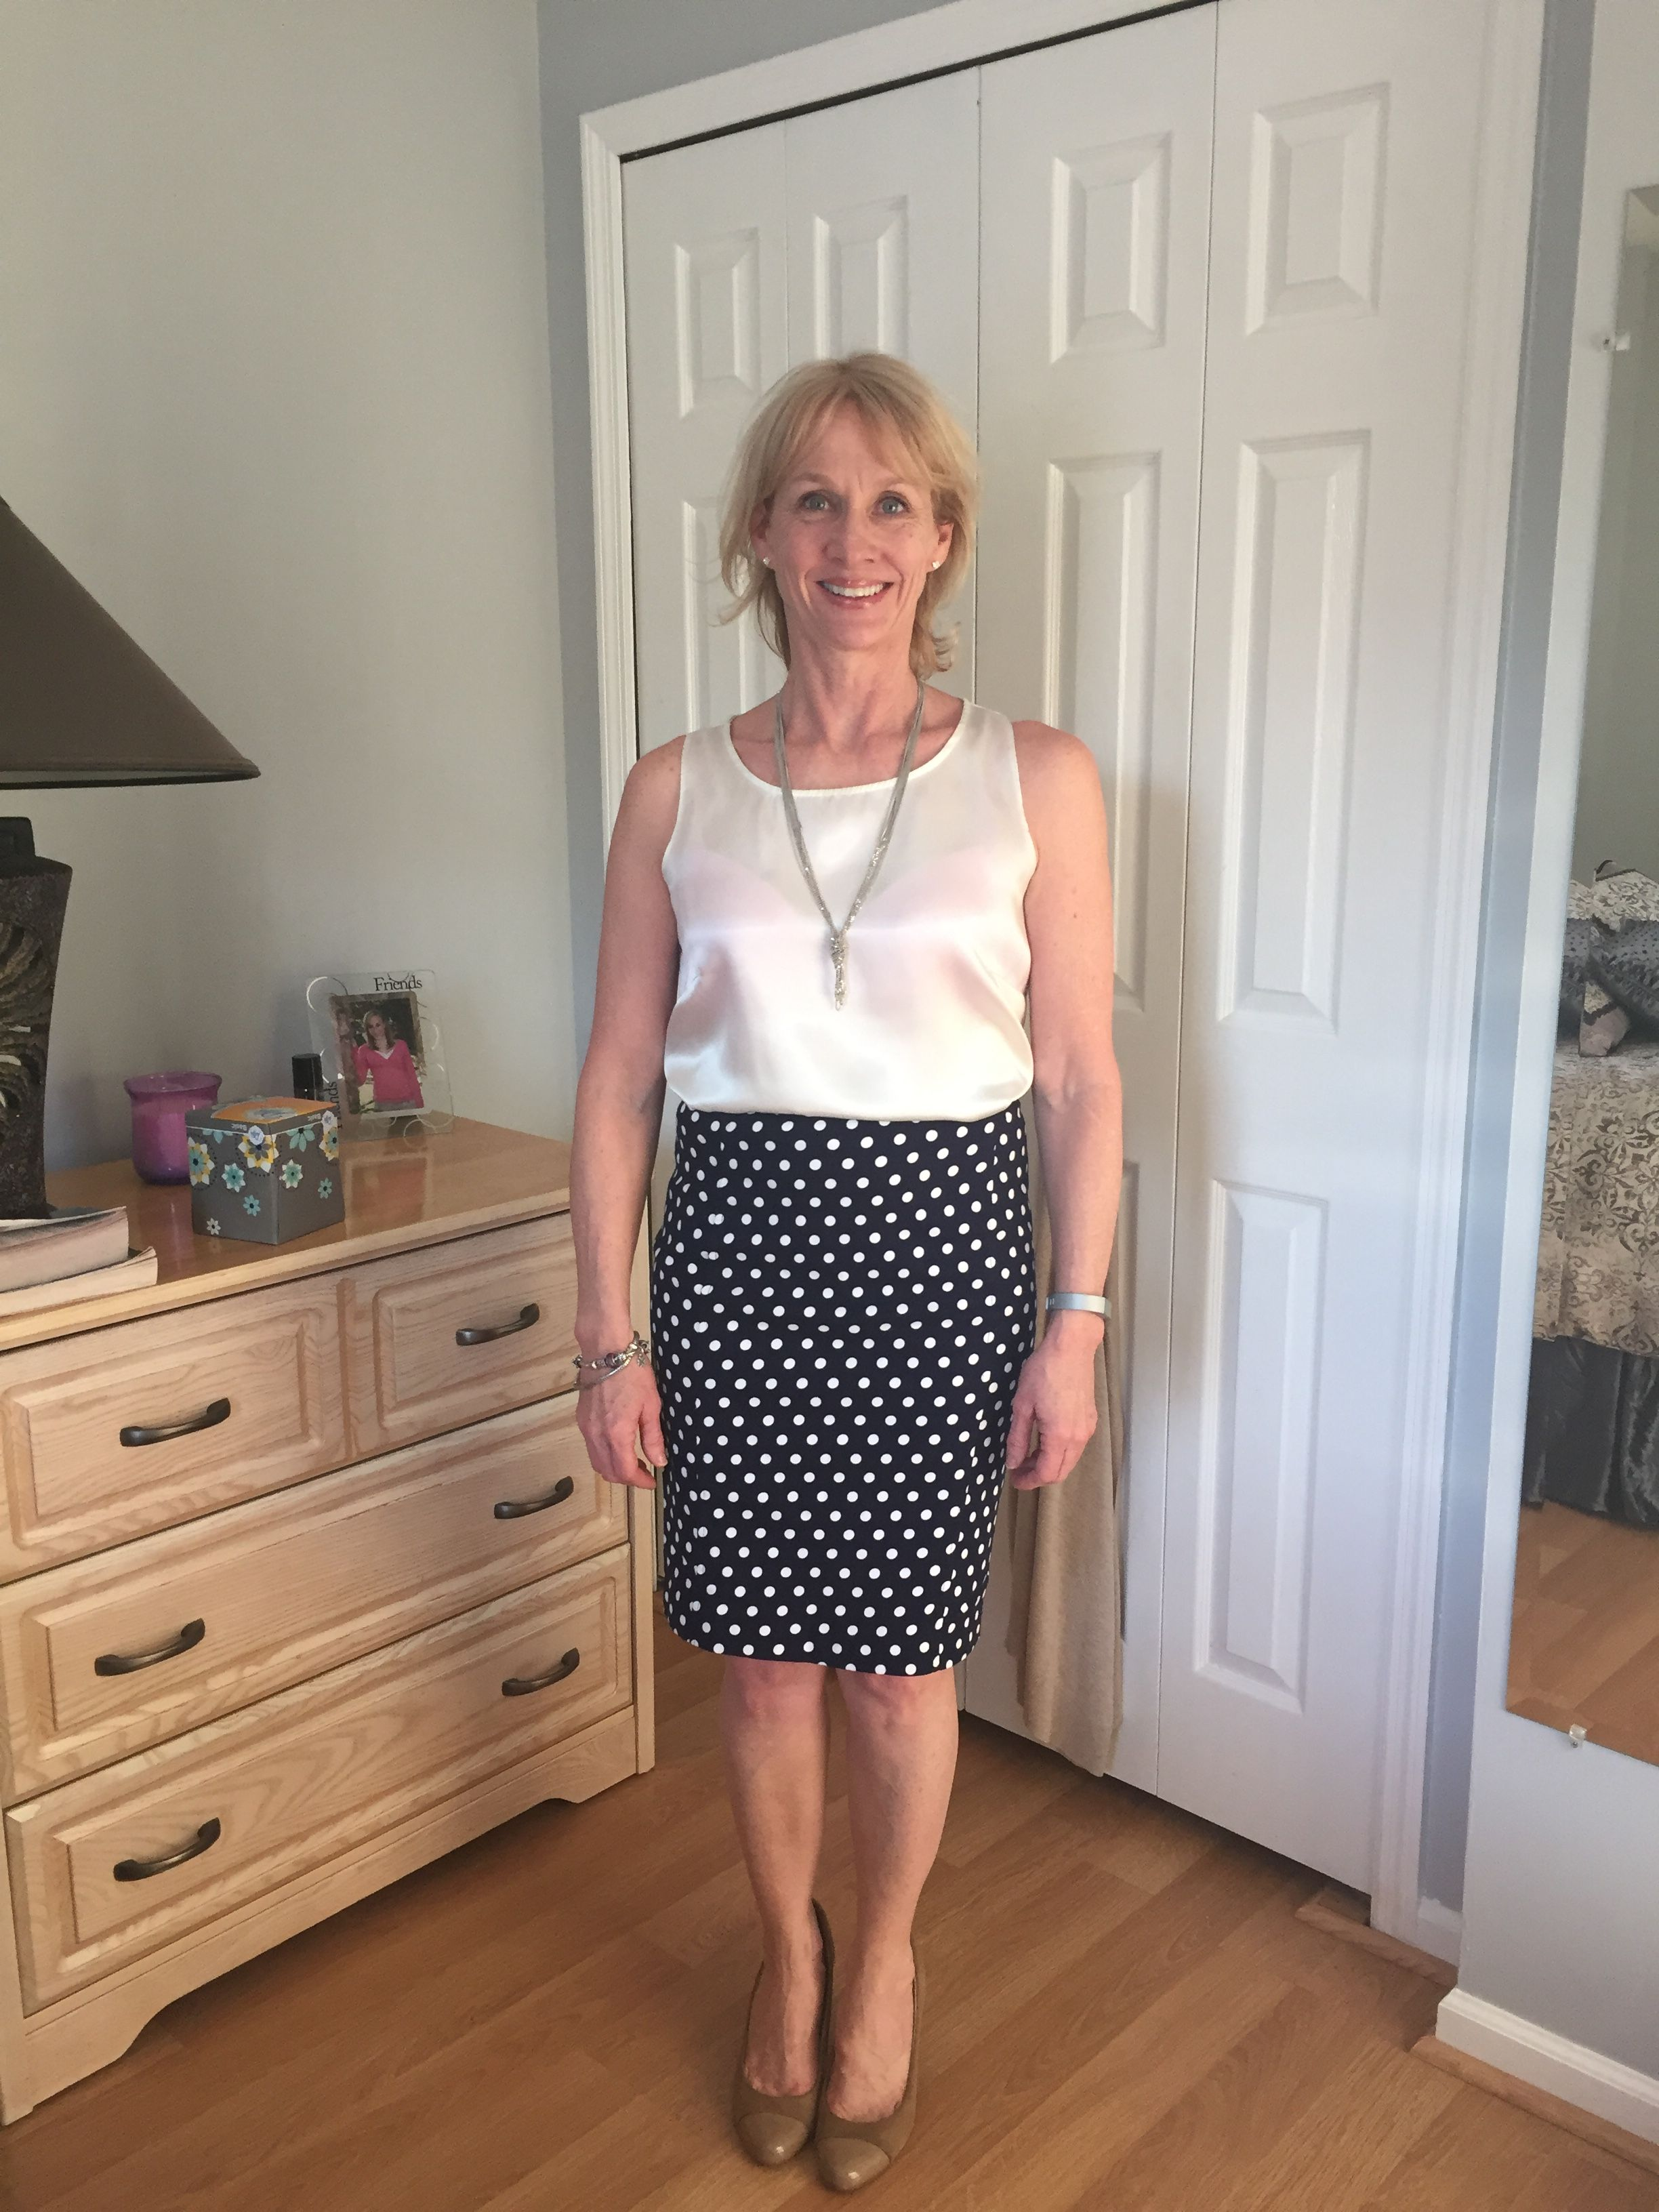 Such a cute skirt - perfect for work!